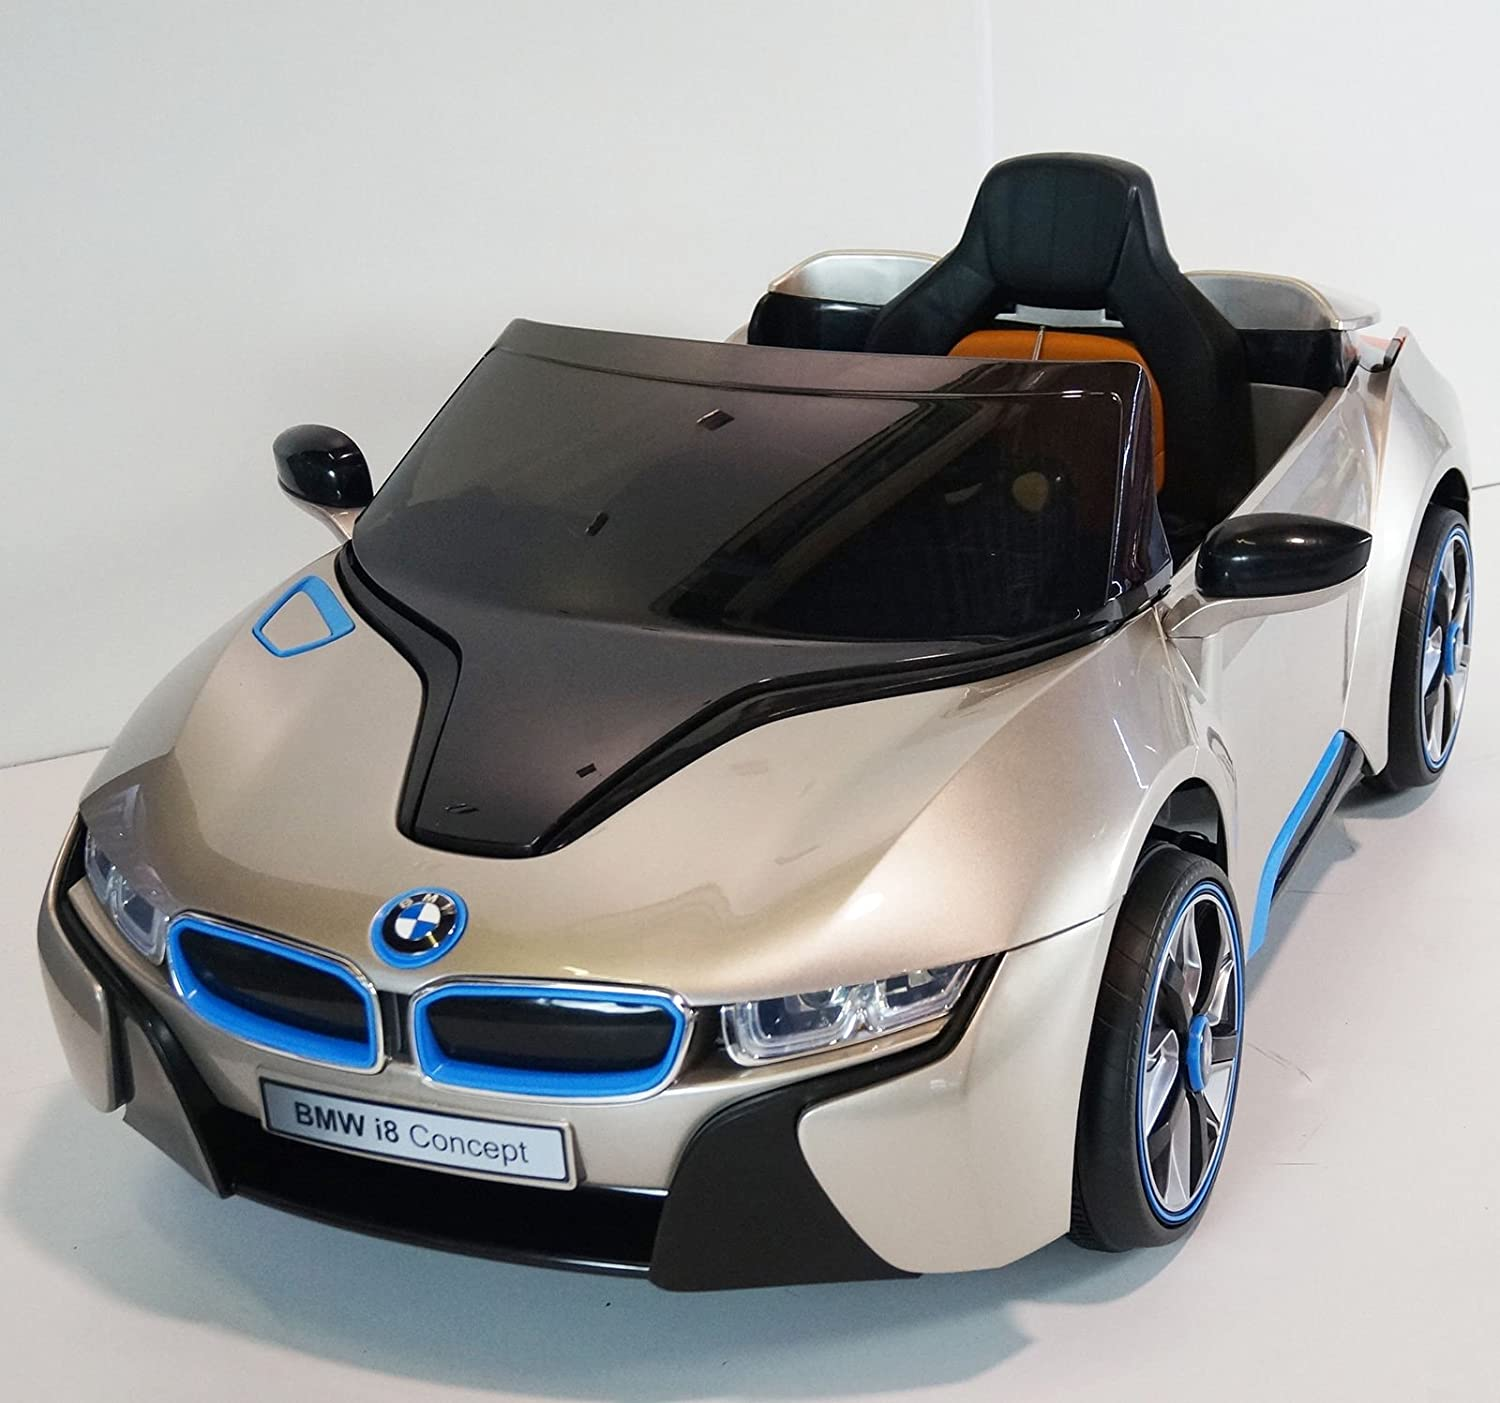 New 2015 Model ficial Licensed BMW i8 Concept Twin Powered